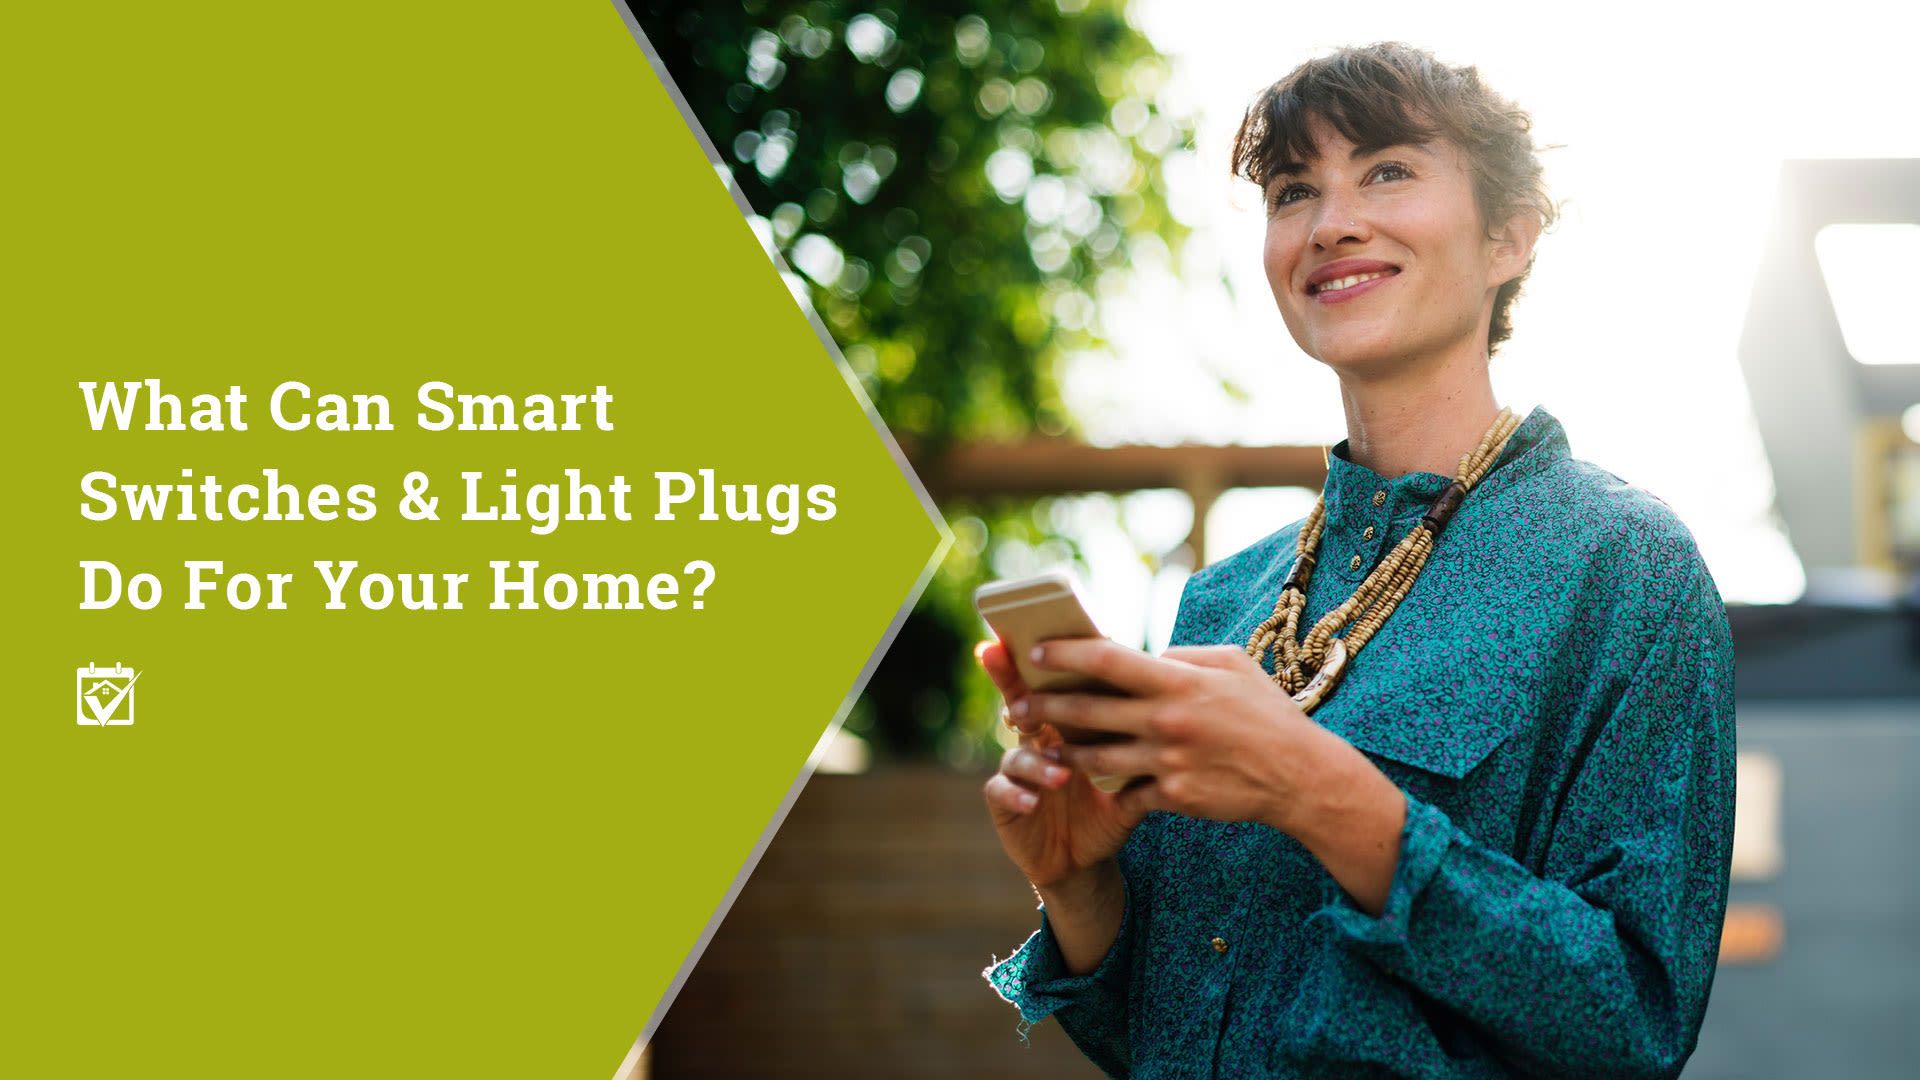 What CaWhat Can Smart Switches and Light Plugs Do For Your Home?n Smart Switches and Light Plugs Do For Your Home?